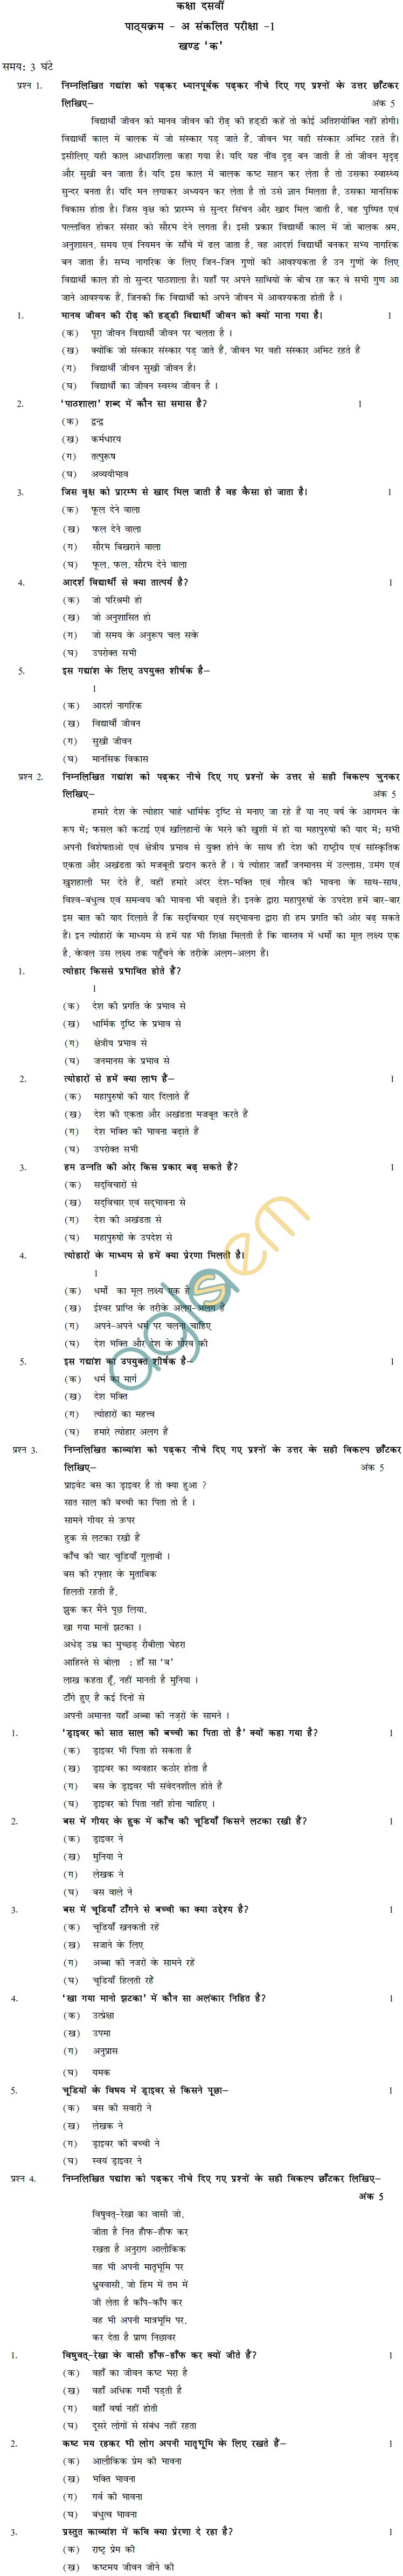 CBSE Board Exam 2013 Sample Papers (SA1) Class IX - Hindi A